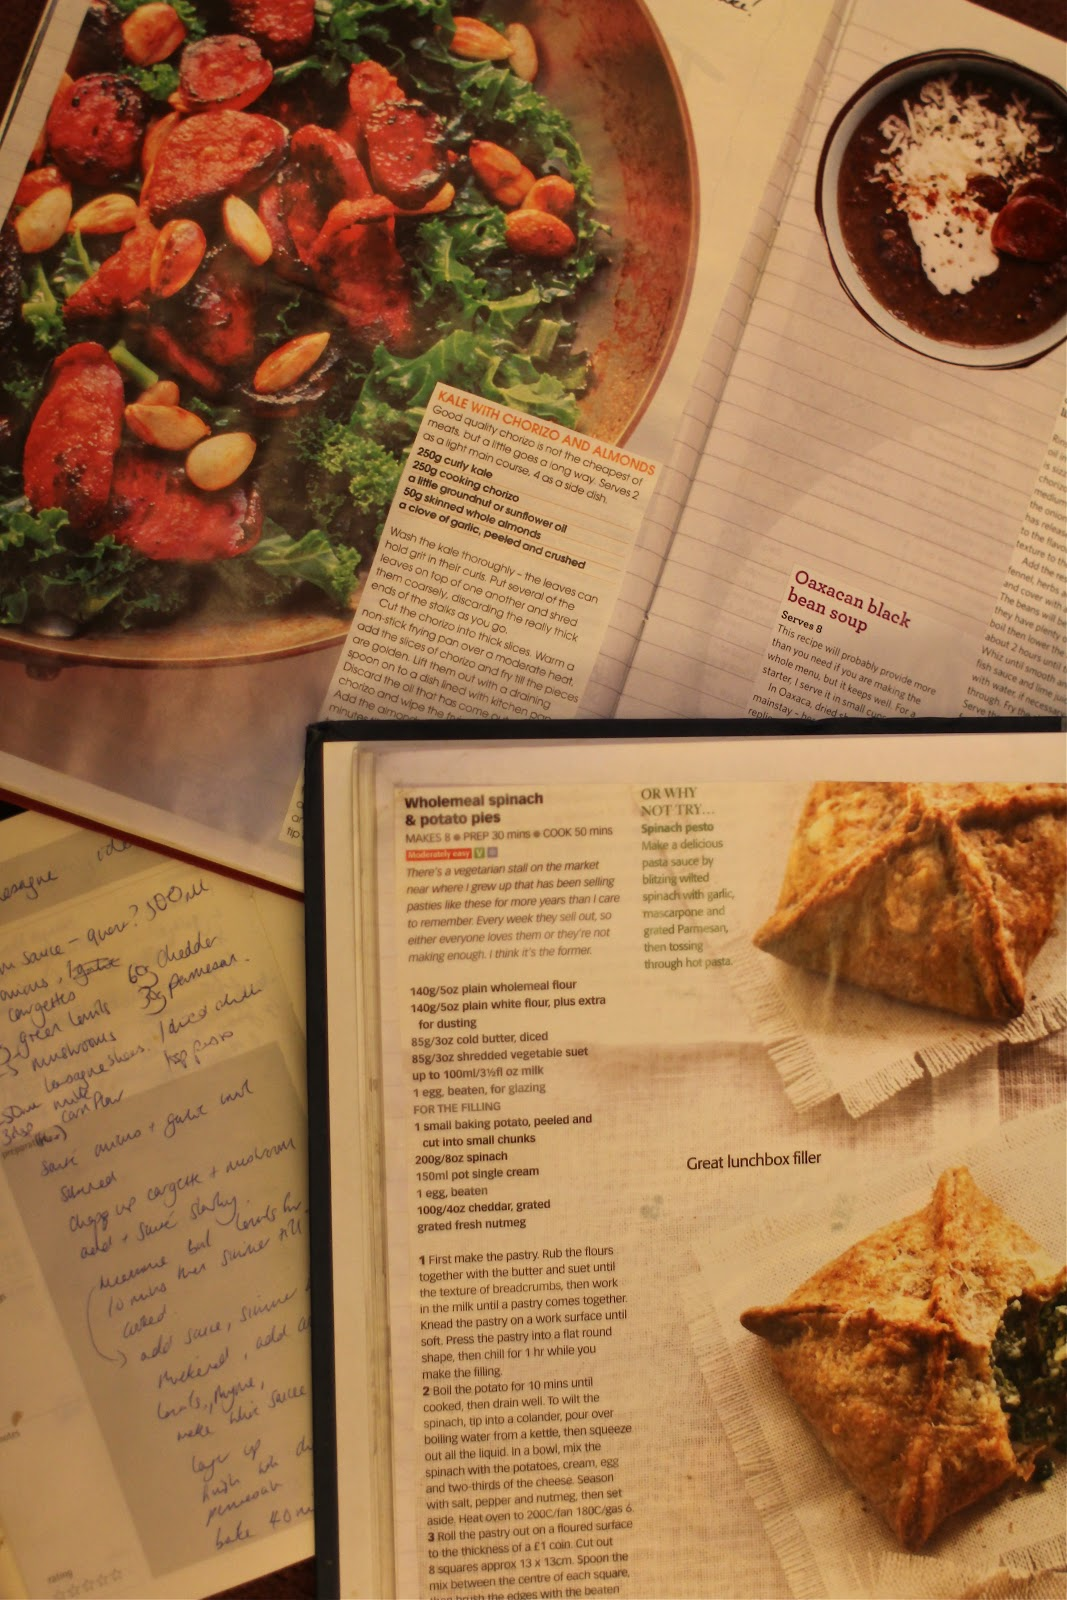 How to scrapbook recipes ideas - I Have Been Keeping A Recipe Scrapbook For About 20 Years I Picked Up The Habit From My Mum Some Of Them Are Stained With Recipes Have Crossings Out